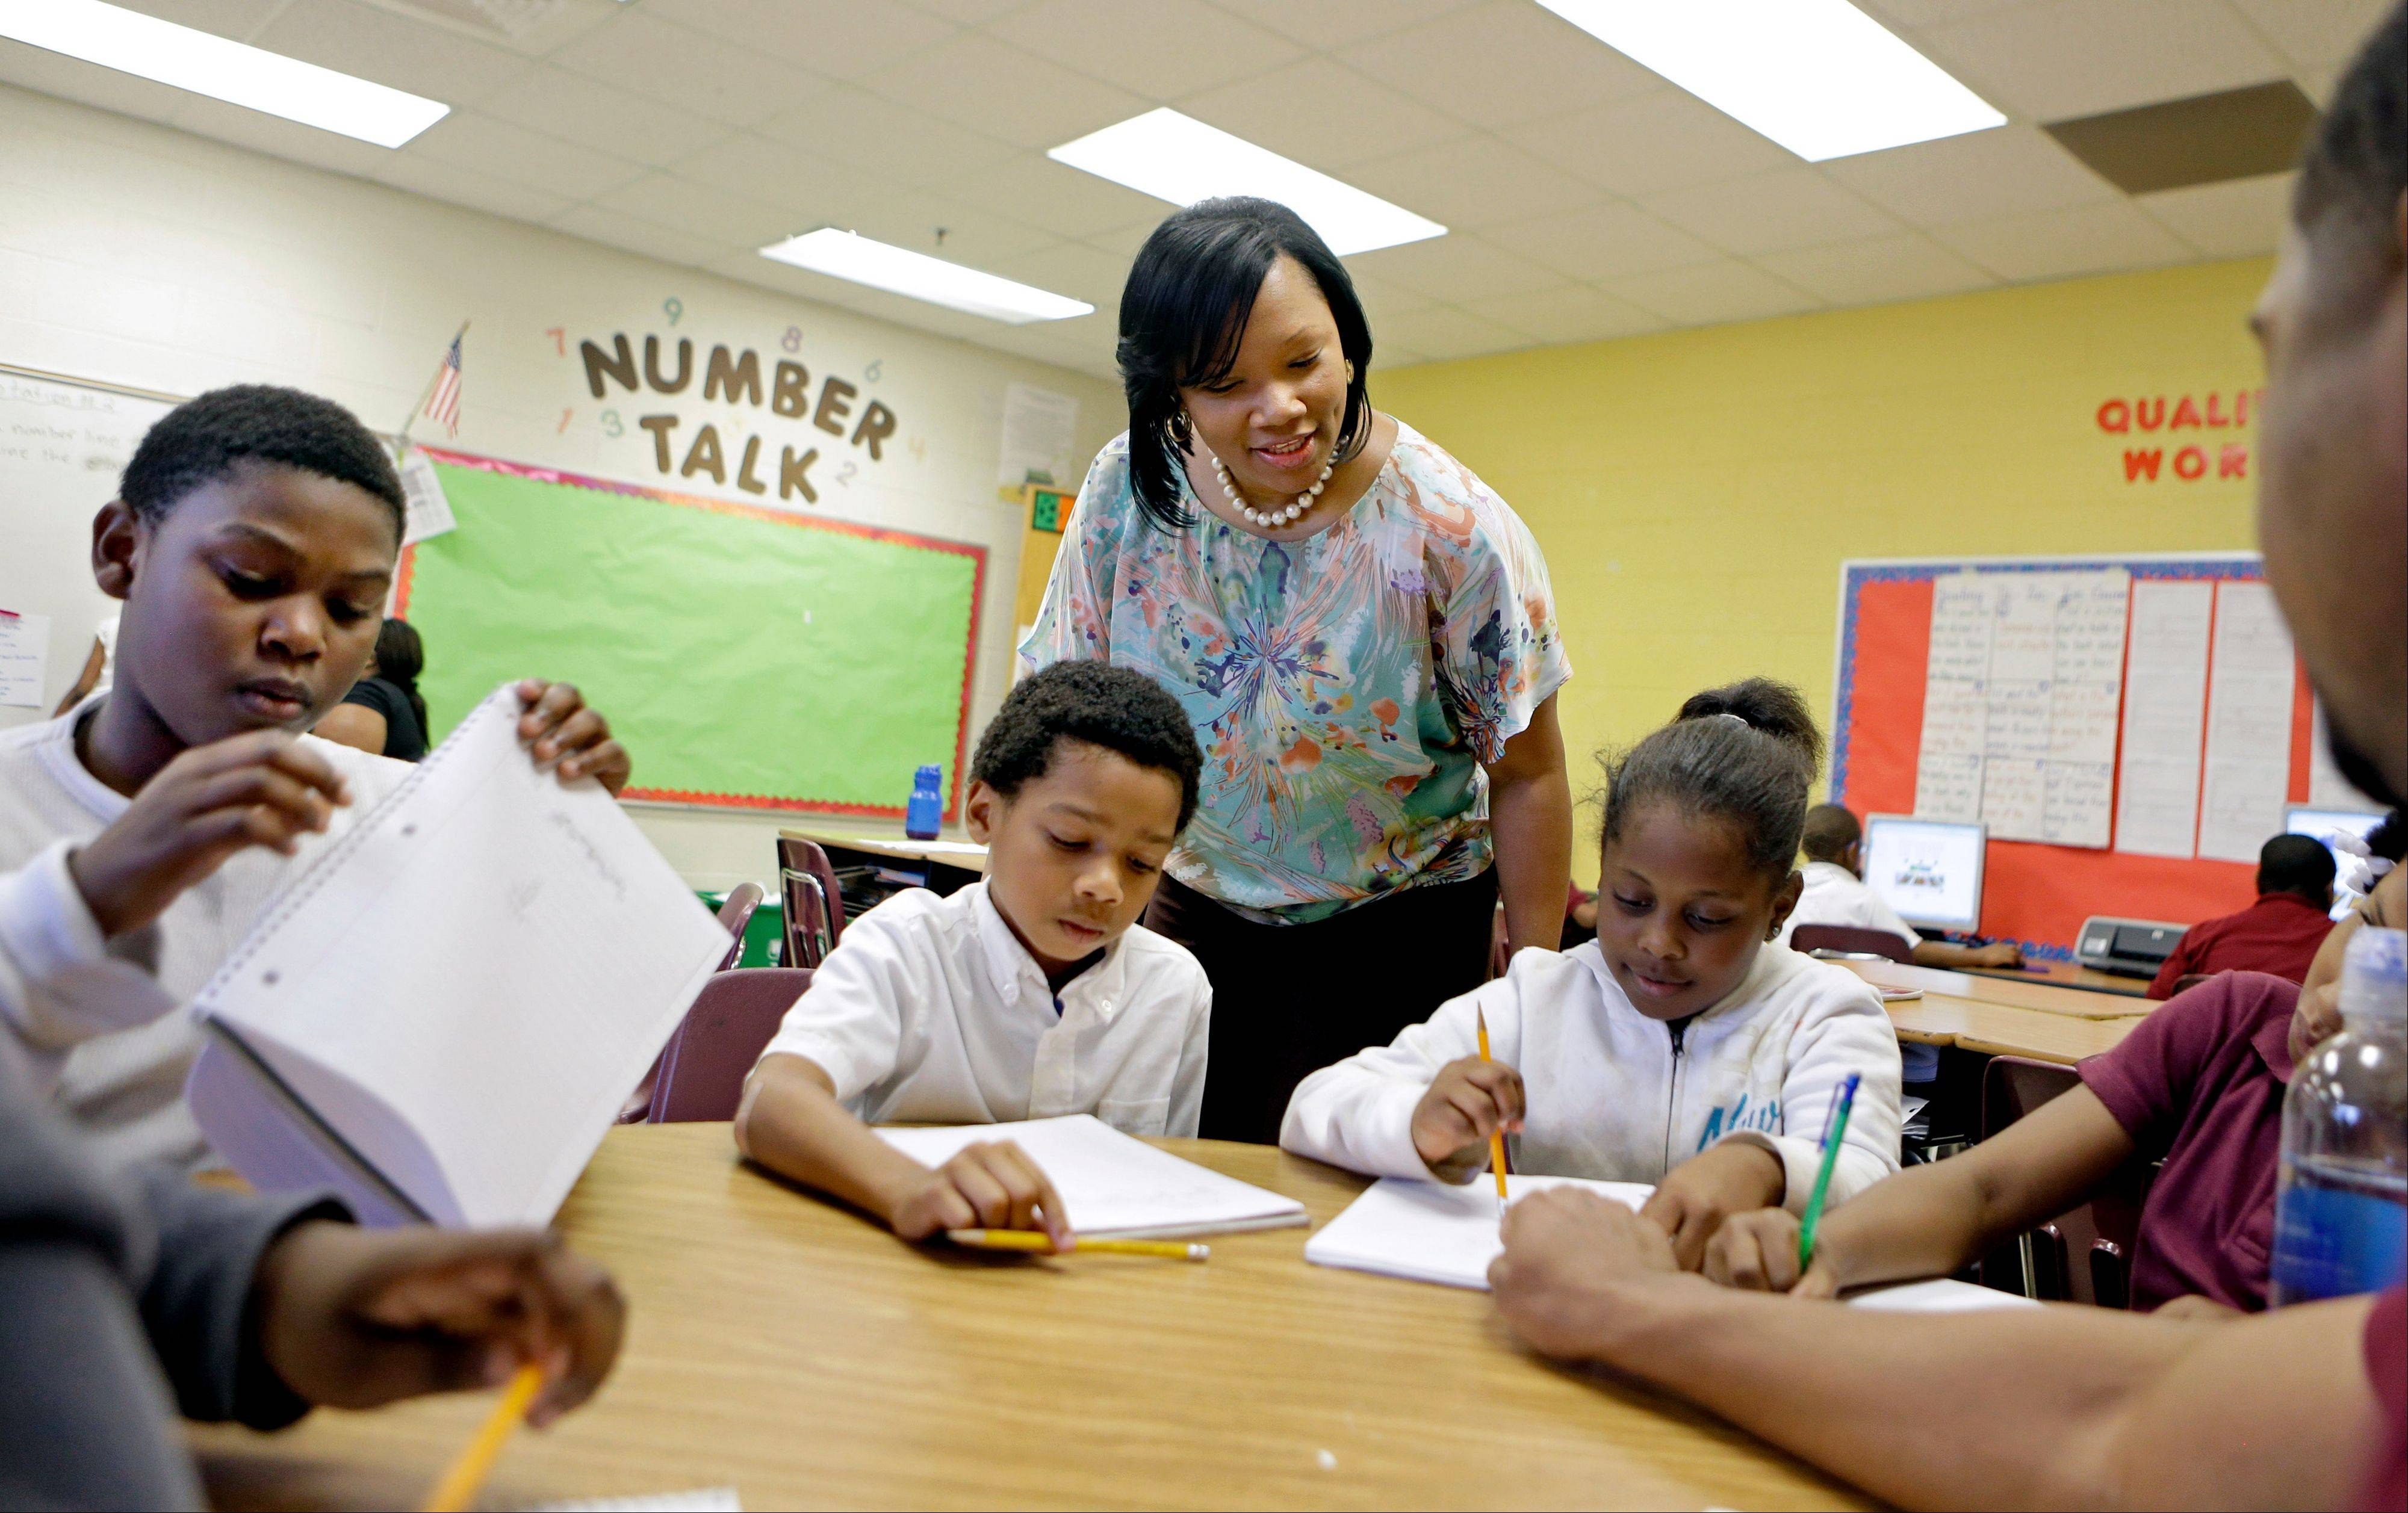 Associated PressBurgess-Peterson Elementary School principal Robin Robbins, center, meets with students during an after-school study program in Atlanta, in preparation for state standardized testing, soon to begin. A new poll from The Associated Press-NORC Center for Public Affairs Research finds parents of school-age children view standardized tests as a useful way to track student progress and school quality.